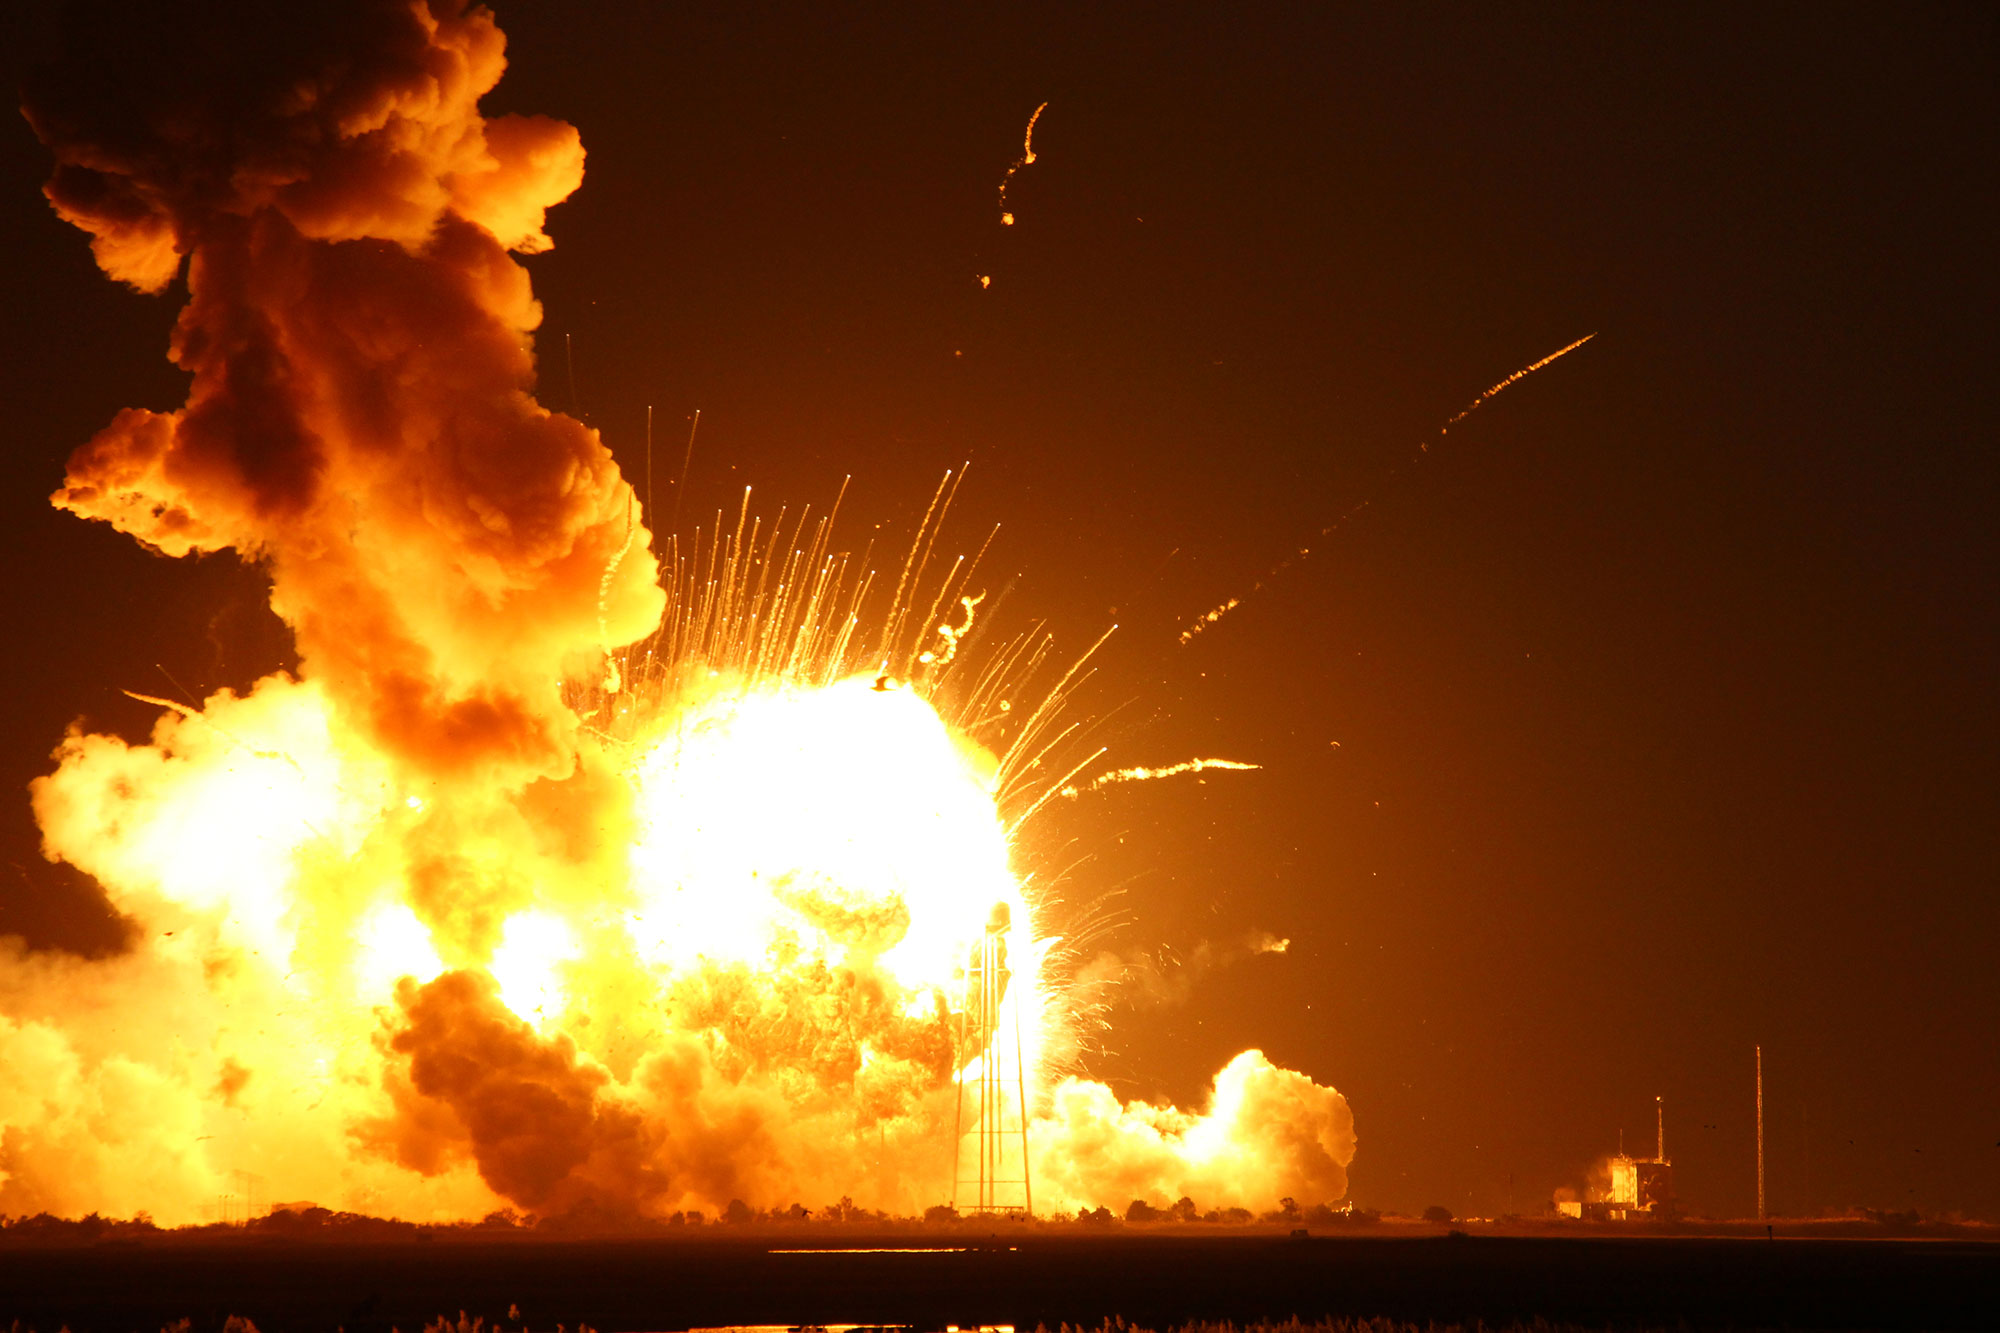 The aerial fireball that erupted from the Antares rocket seconds after blastoff could be seen for many miles. The pressure wave and heat wave from the explosion were even felt at the press site nearly two miles away from the launch pad. Credit: Ken Kremer